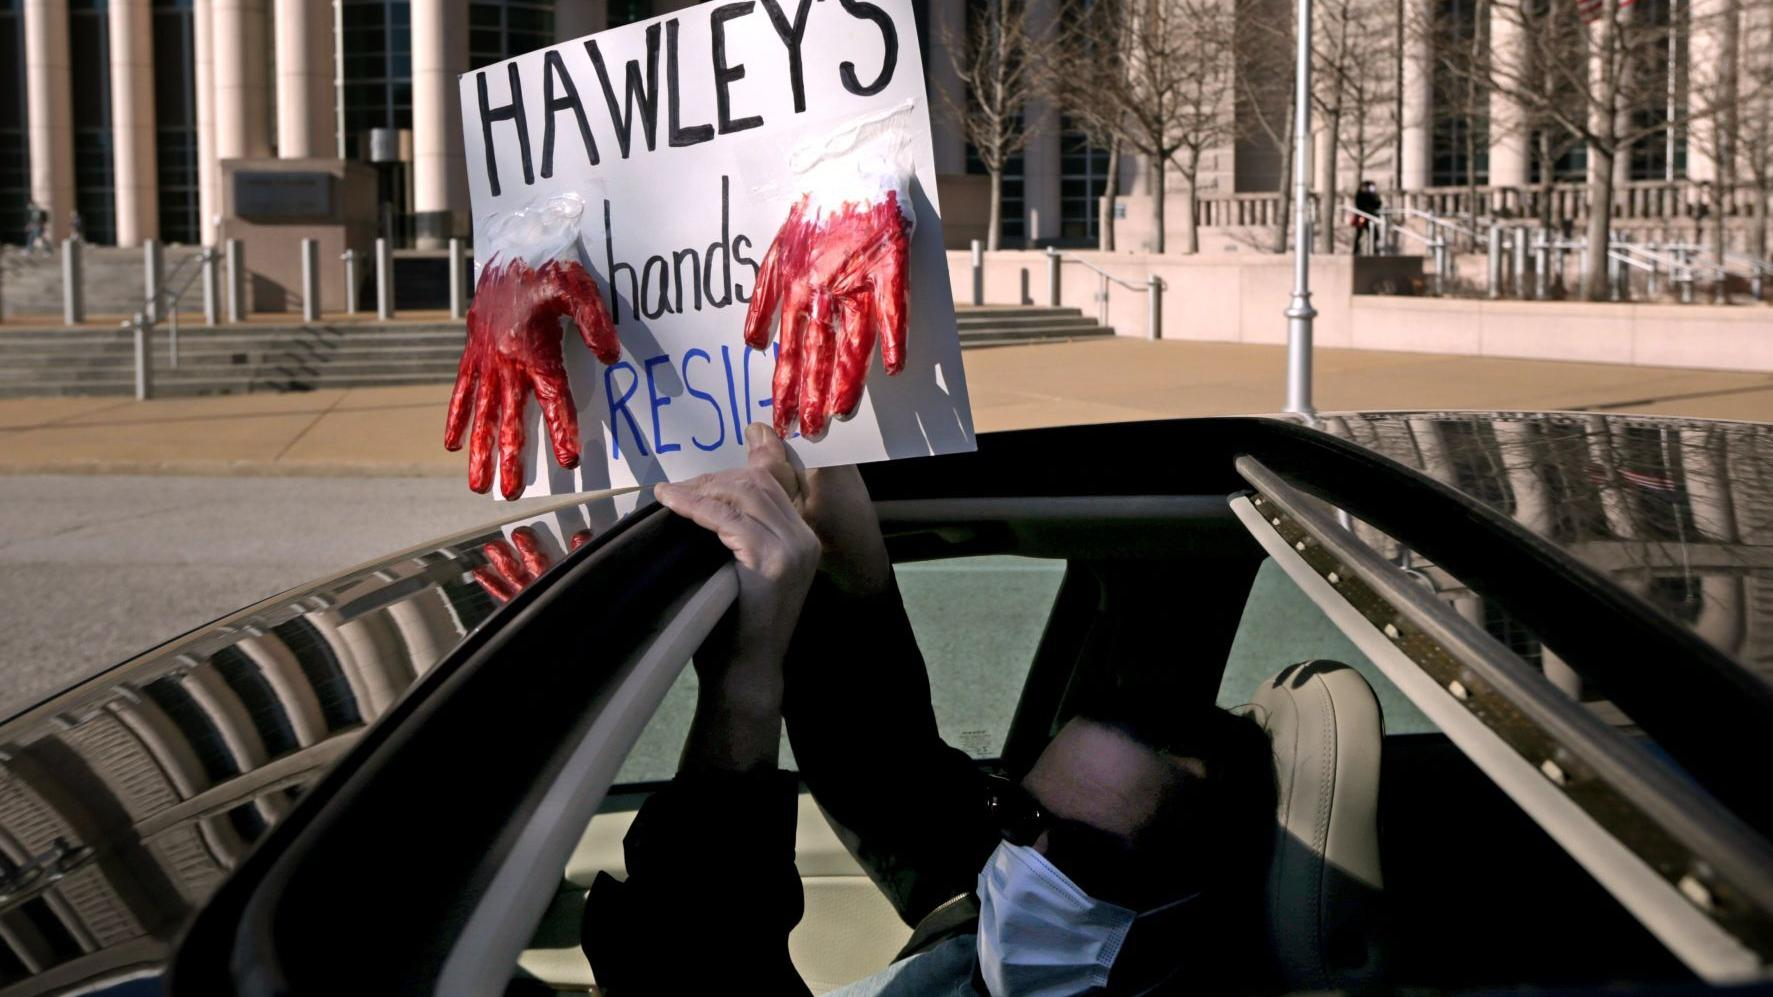 Protesters say Hawley has 'blood on his hands' and should step down